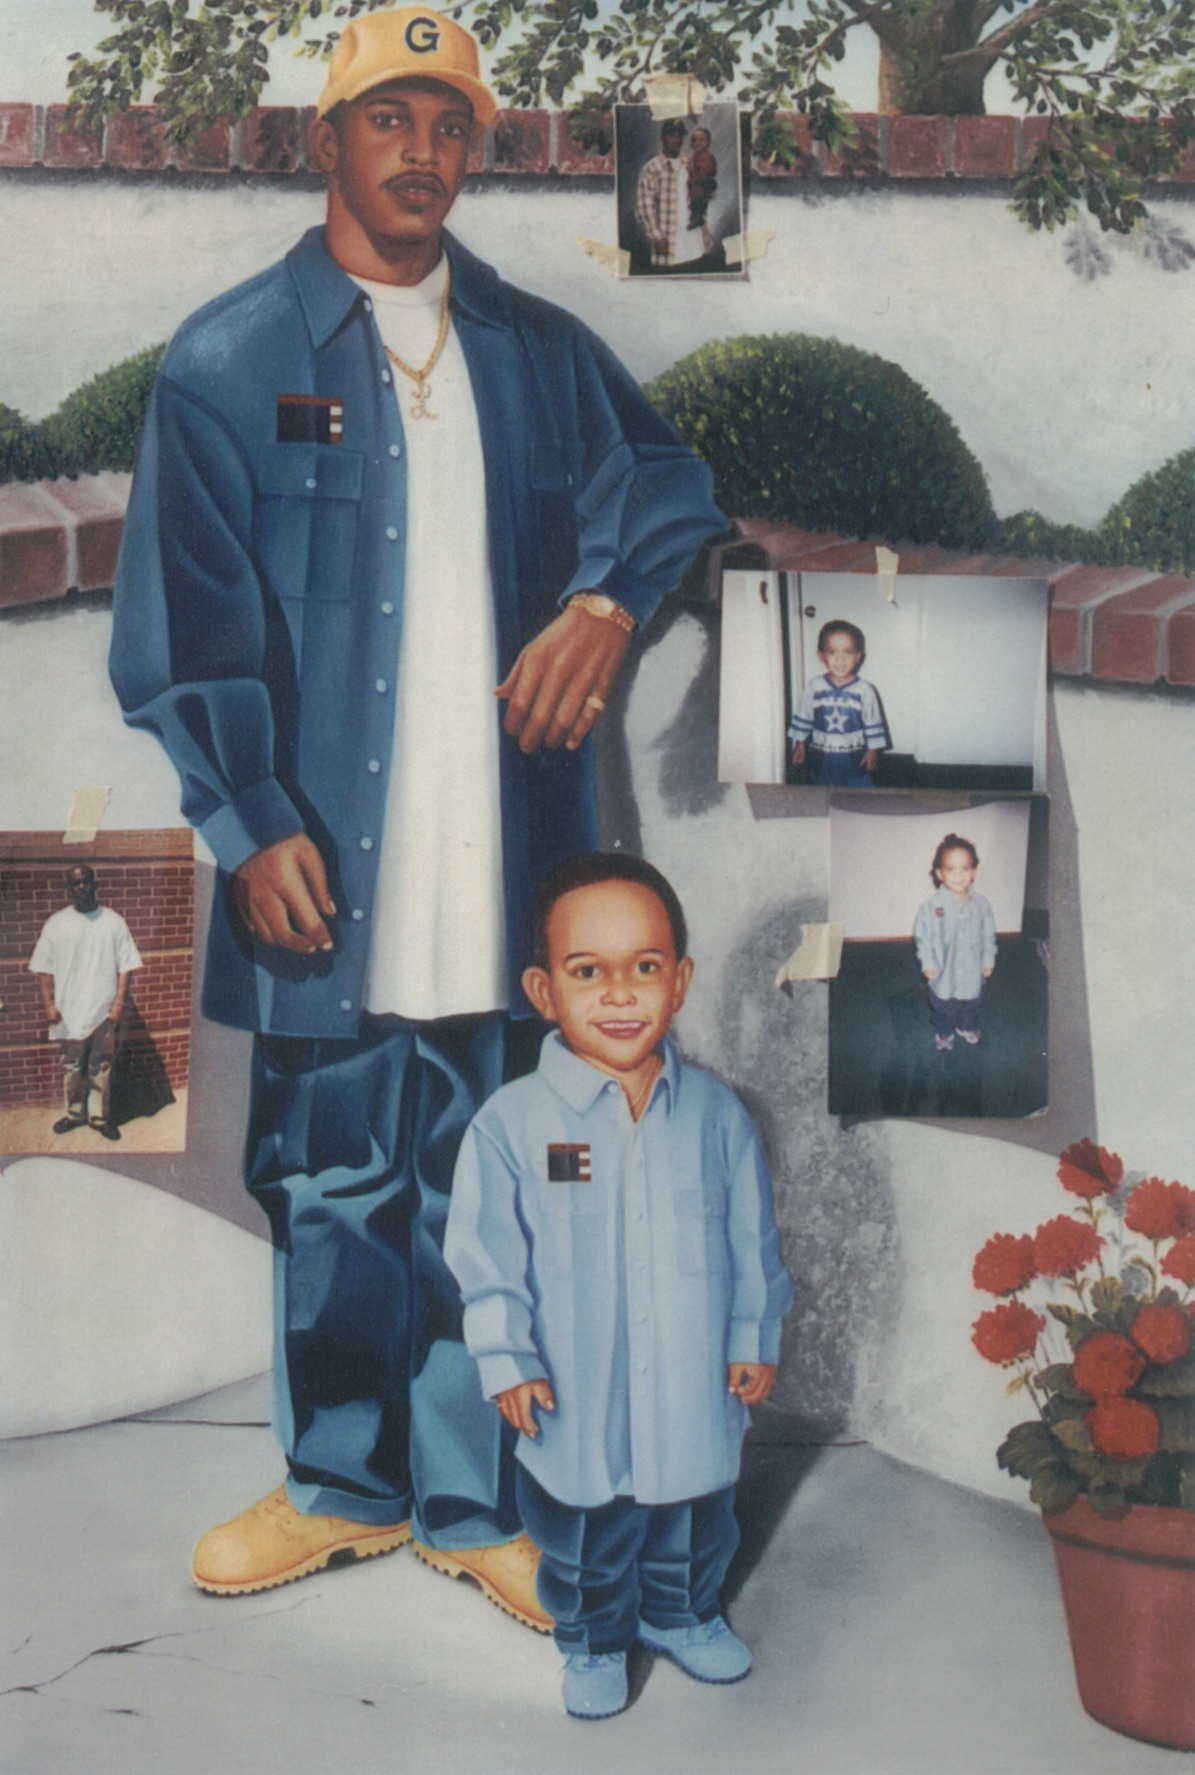 Koolos and Son Portrait